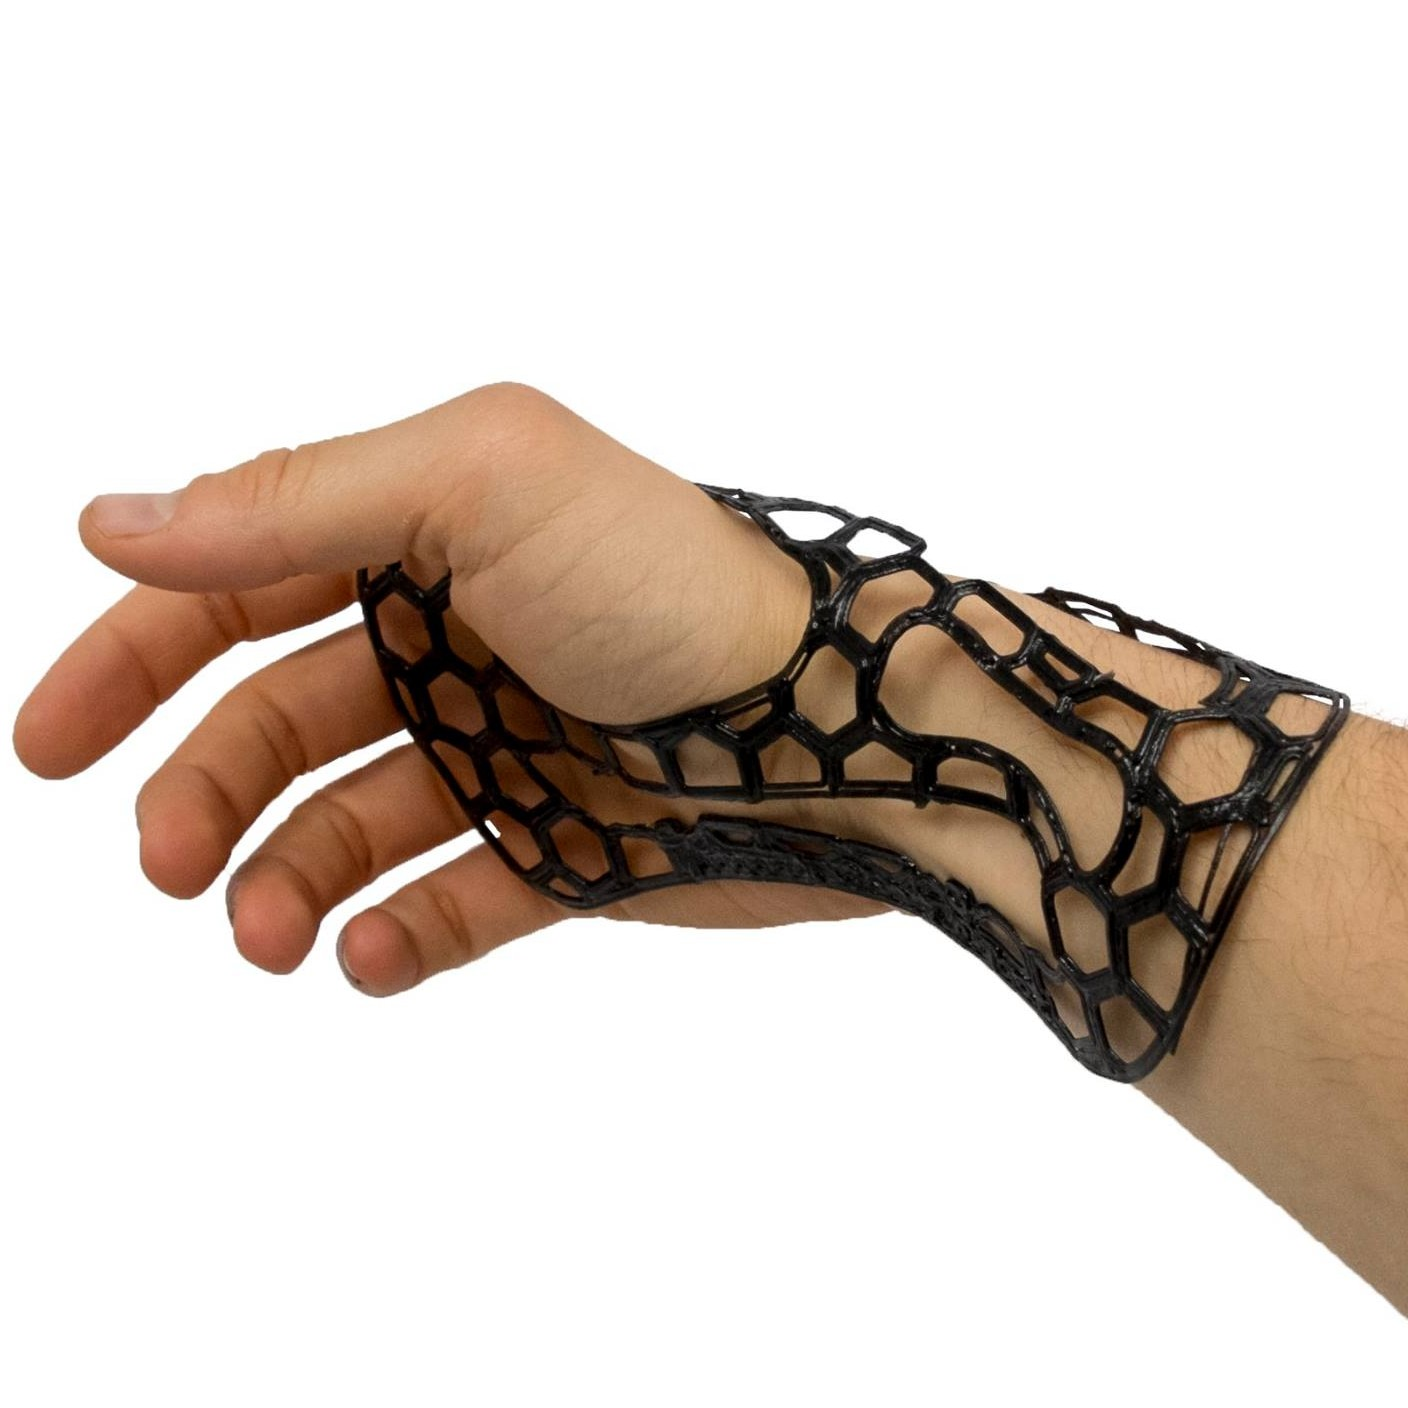 Prof. Levi's +Lab 3D Prints Arm Braces Using High Performance Composites